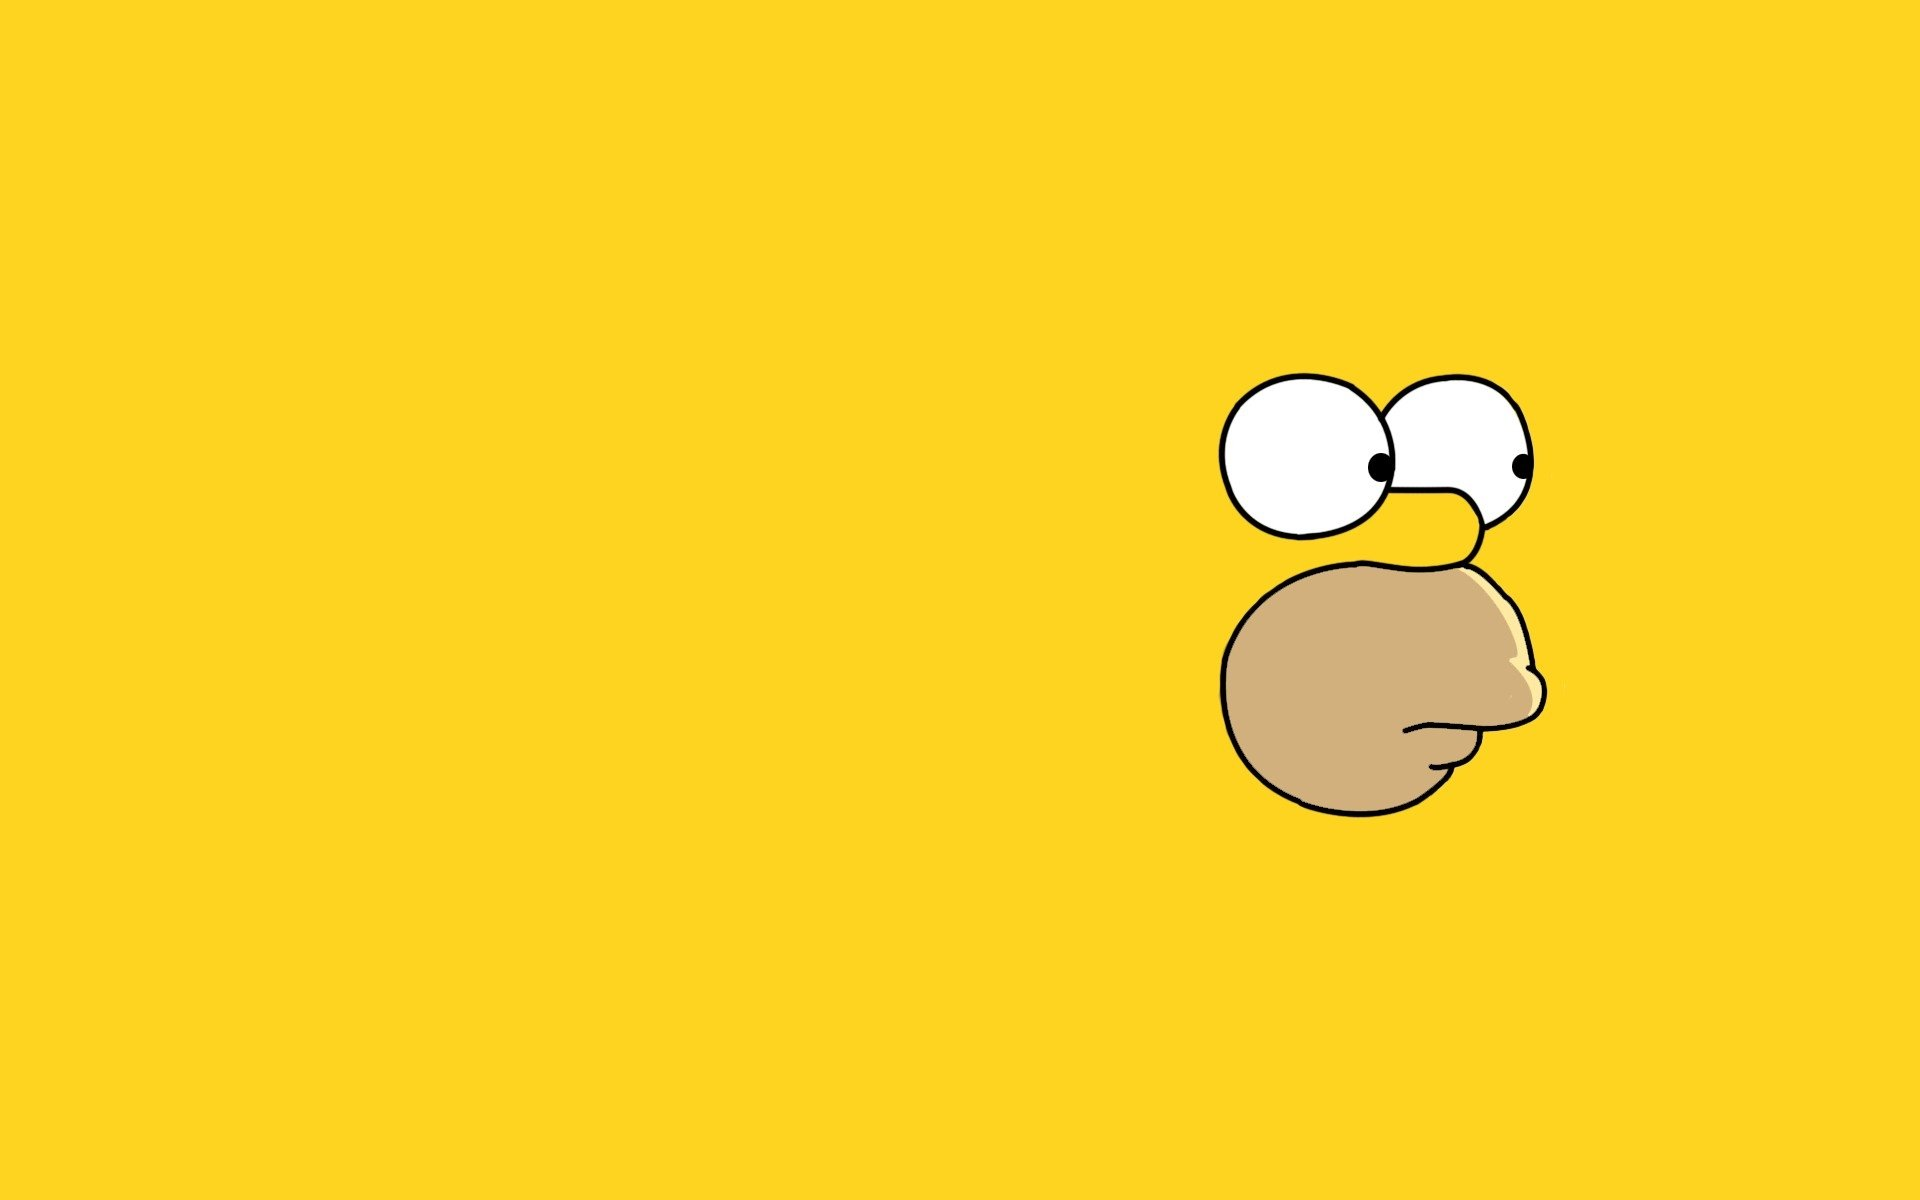 Wallpaper iphone simpsons - Hd Wallpaper Background Id 400623